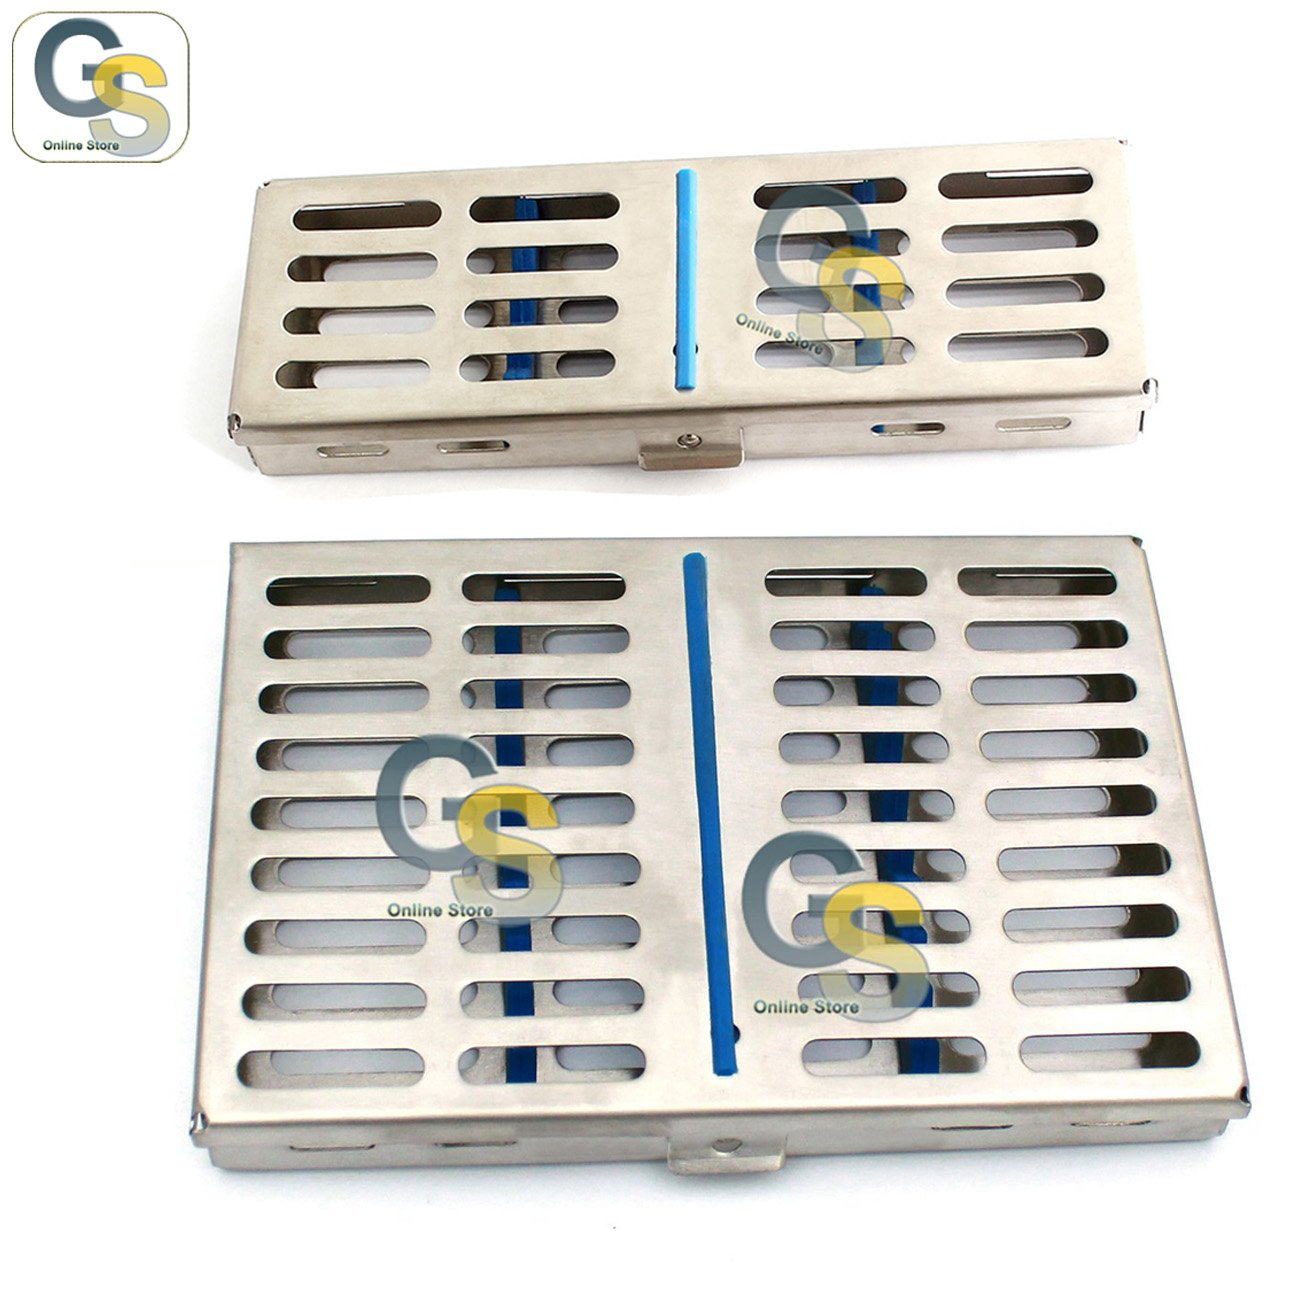 G.S 2 STAINLESS STEEL STERILIZATION CASSETTE BOX TRAY FOR 5 AND 10 INSTRUMENTS